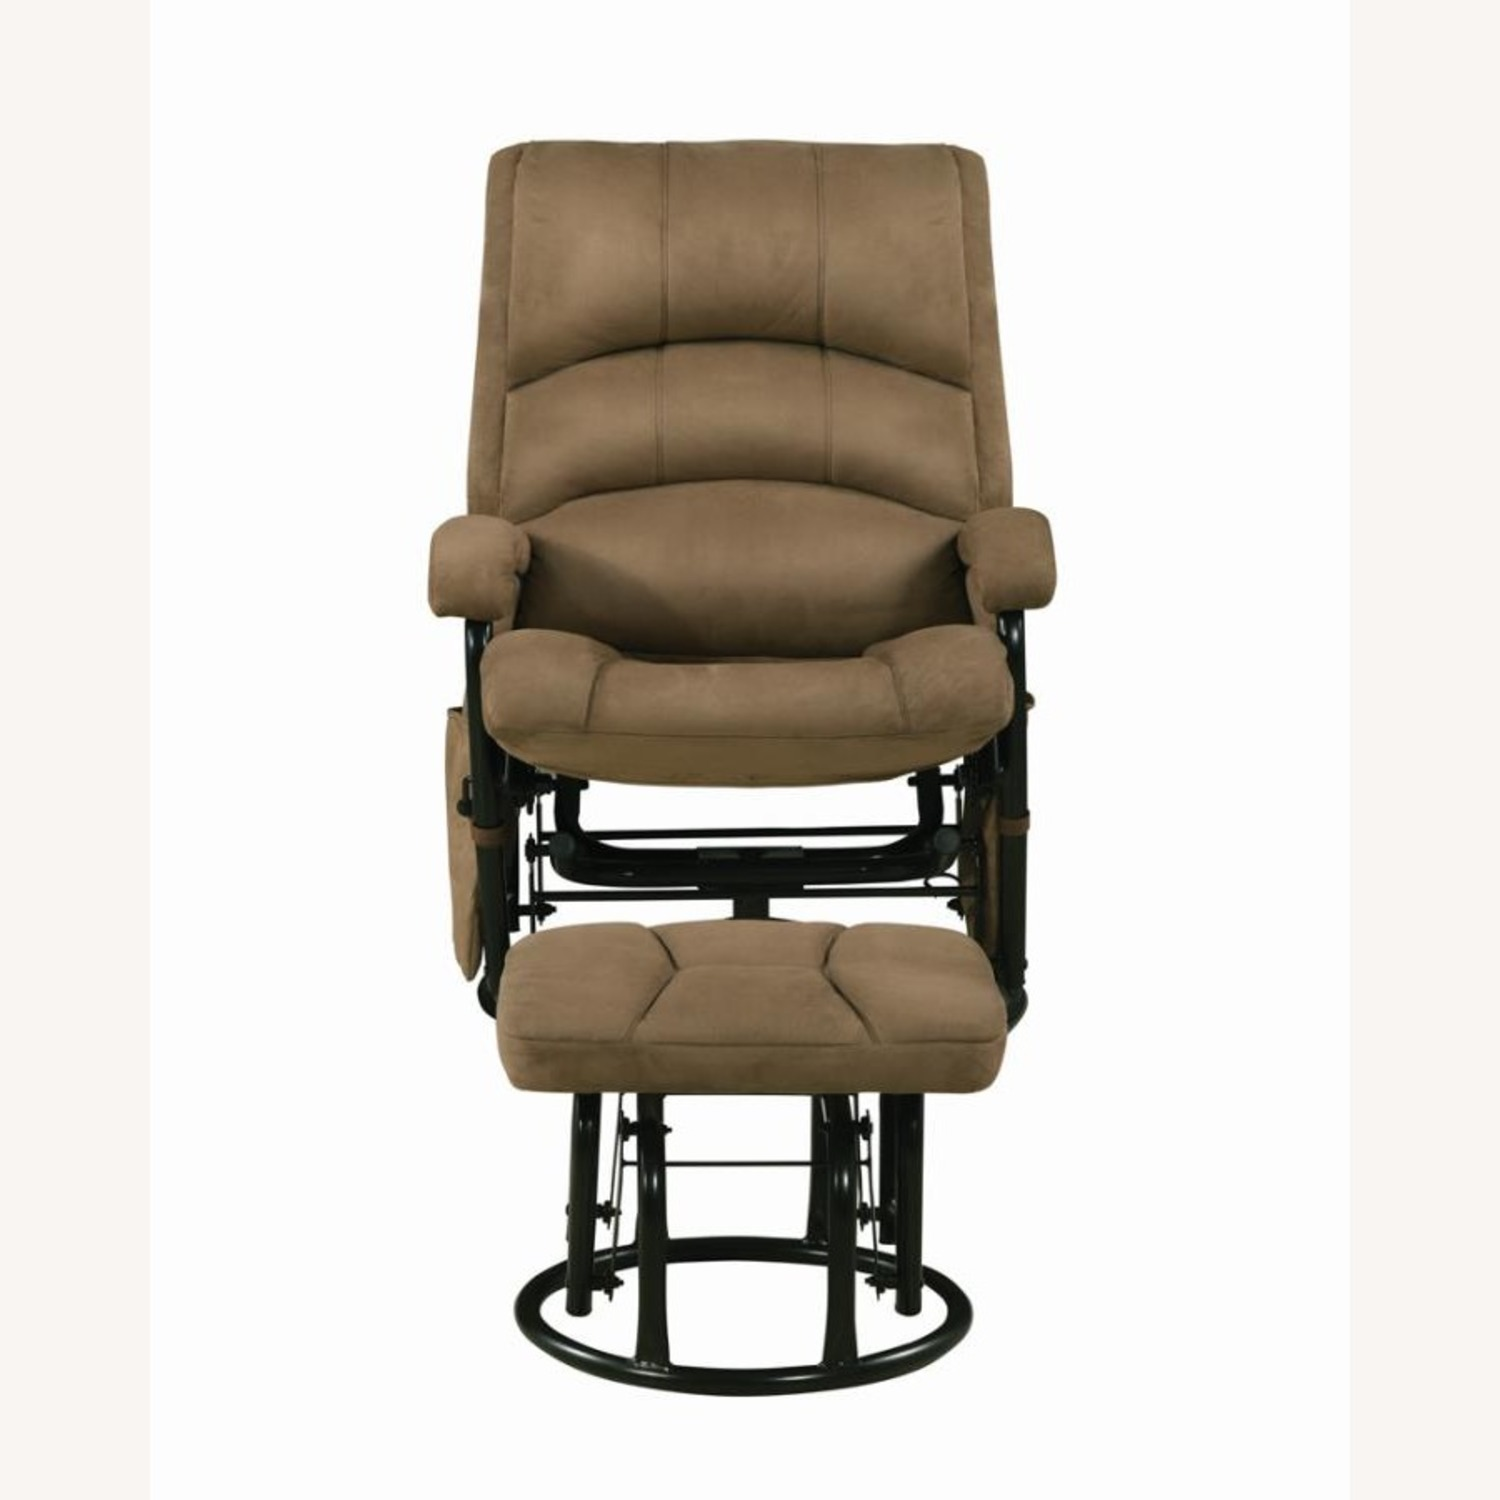 Glider W/ Ottoman In Brown Microfiber Upholstery - image-1